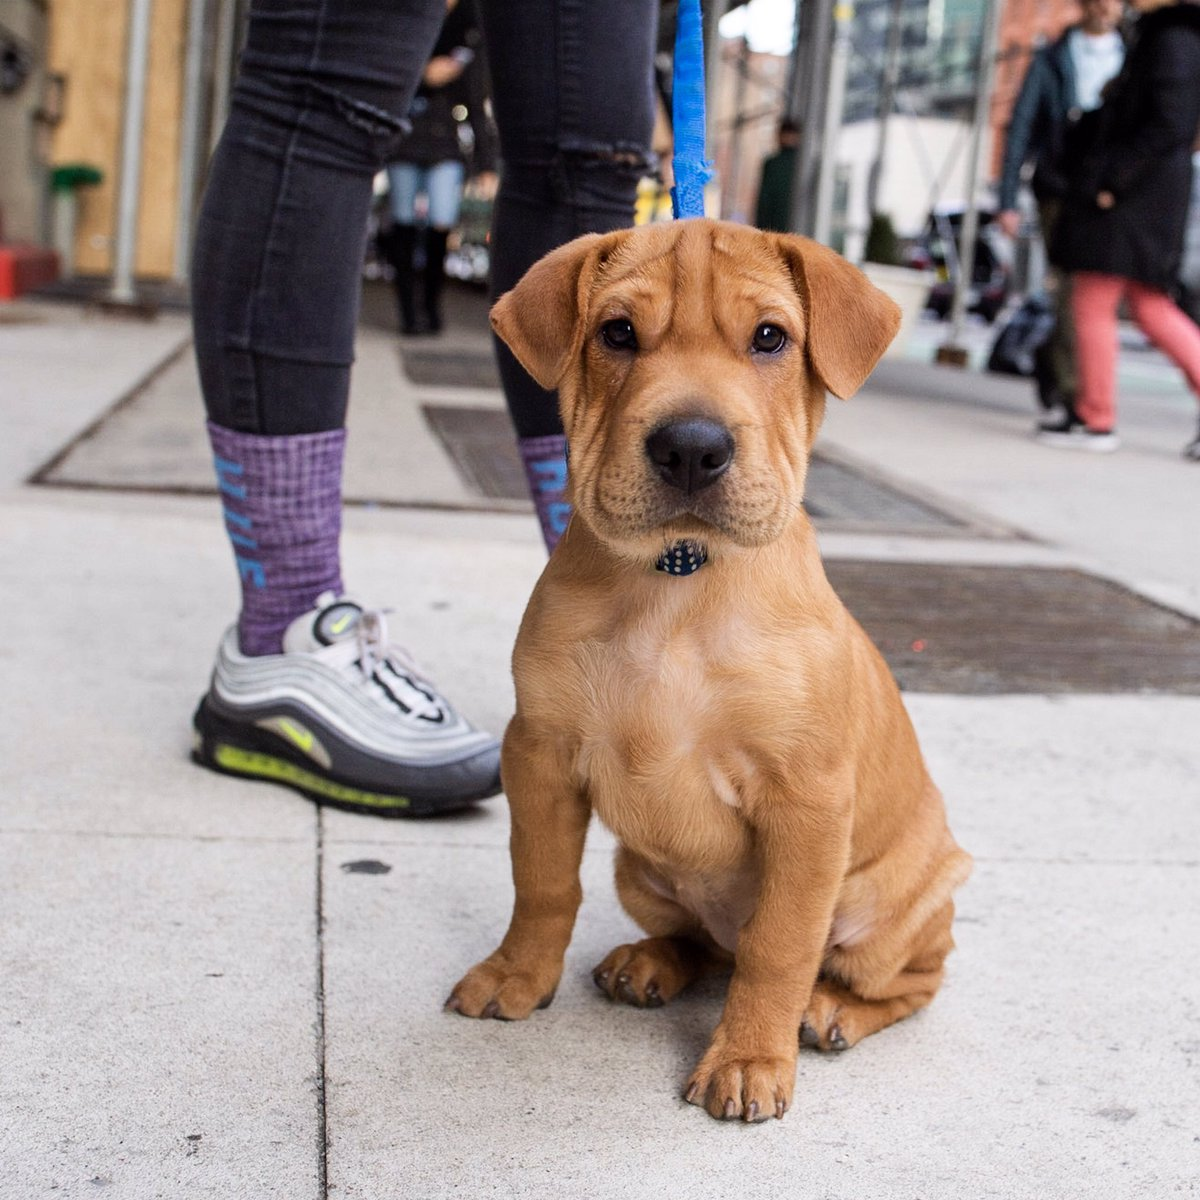 """Leelu, Sharp Eagle (Shar Pei/Beagle mix; 3 m/o), West 4th &amp; Lafayette St., New York, NY • """"The Beagle in her makes weird noises. She sounds like a monkey when she whines."""" <br>http://pic.twitter.com/tBoVI7VatX"""